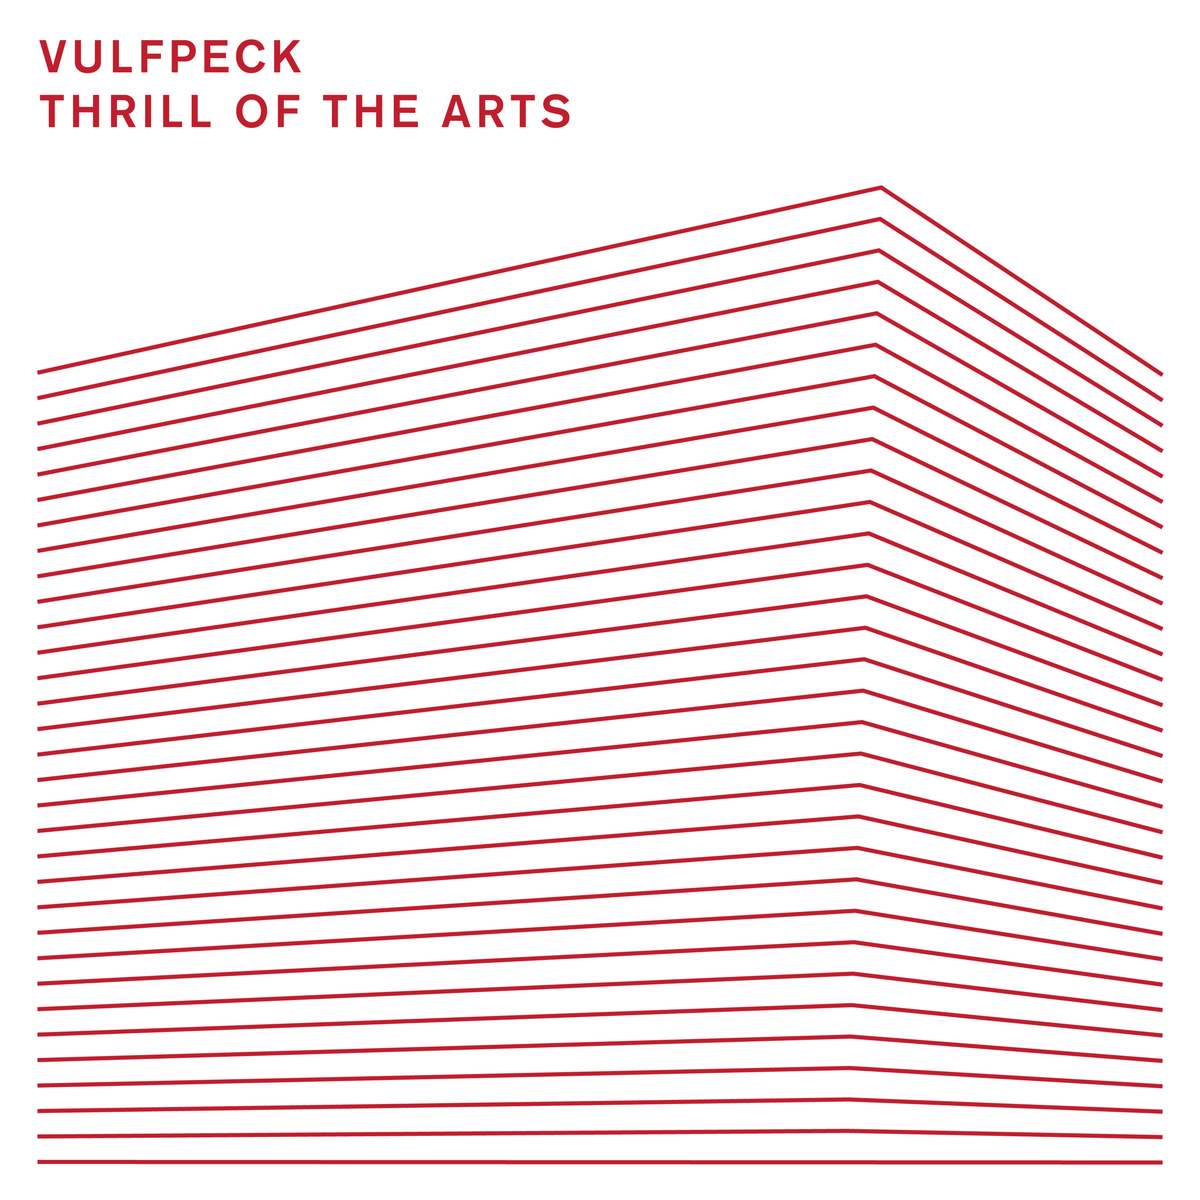 Vulfpeck's latest album Thrill of the Arts